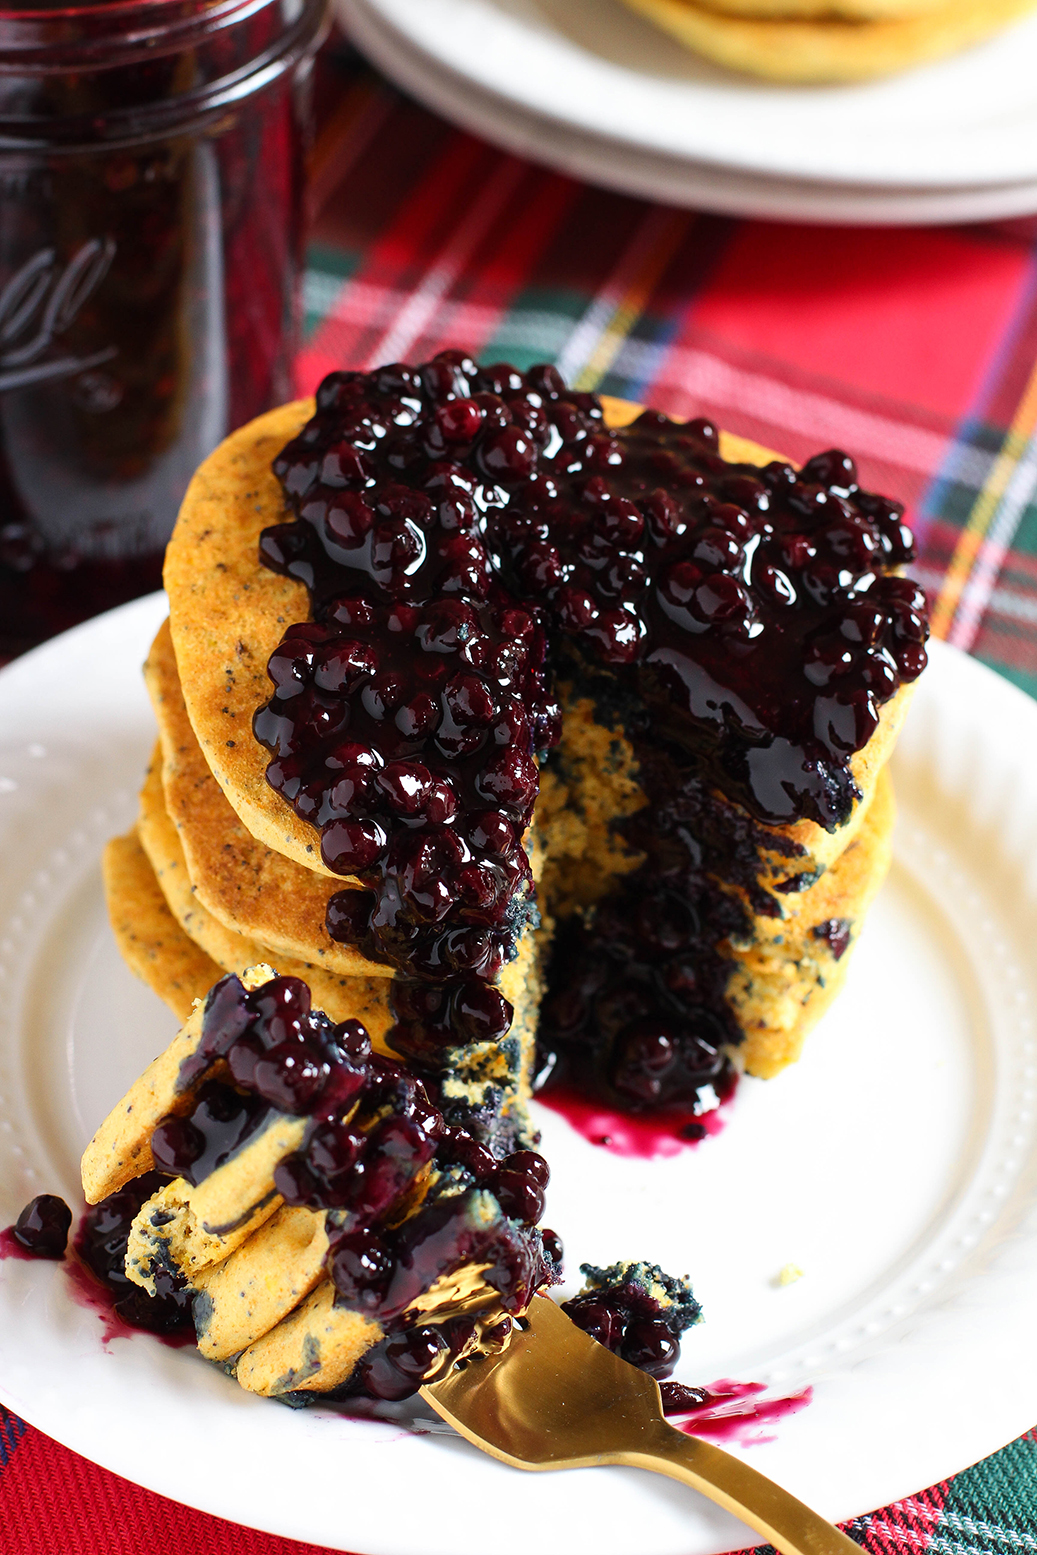 Lemon Poppy Seed Cornmeal Pancakes with Blueberry Compote - vegan & gluten free